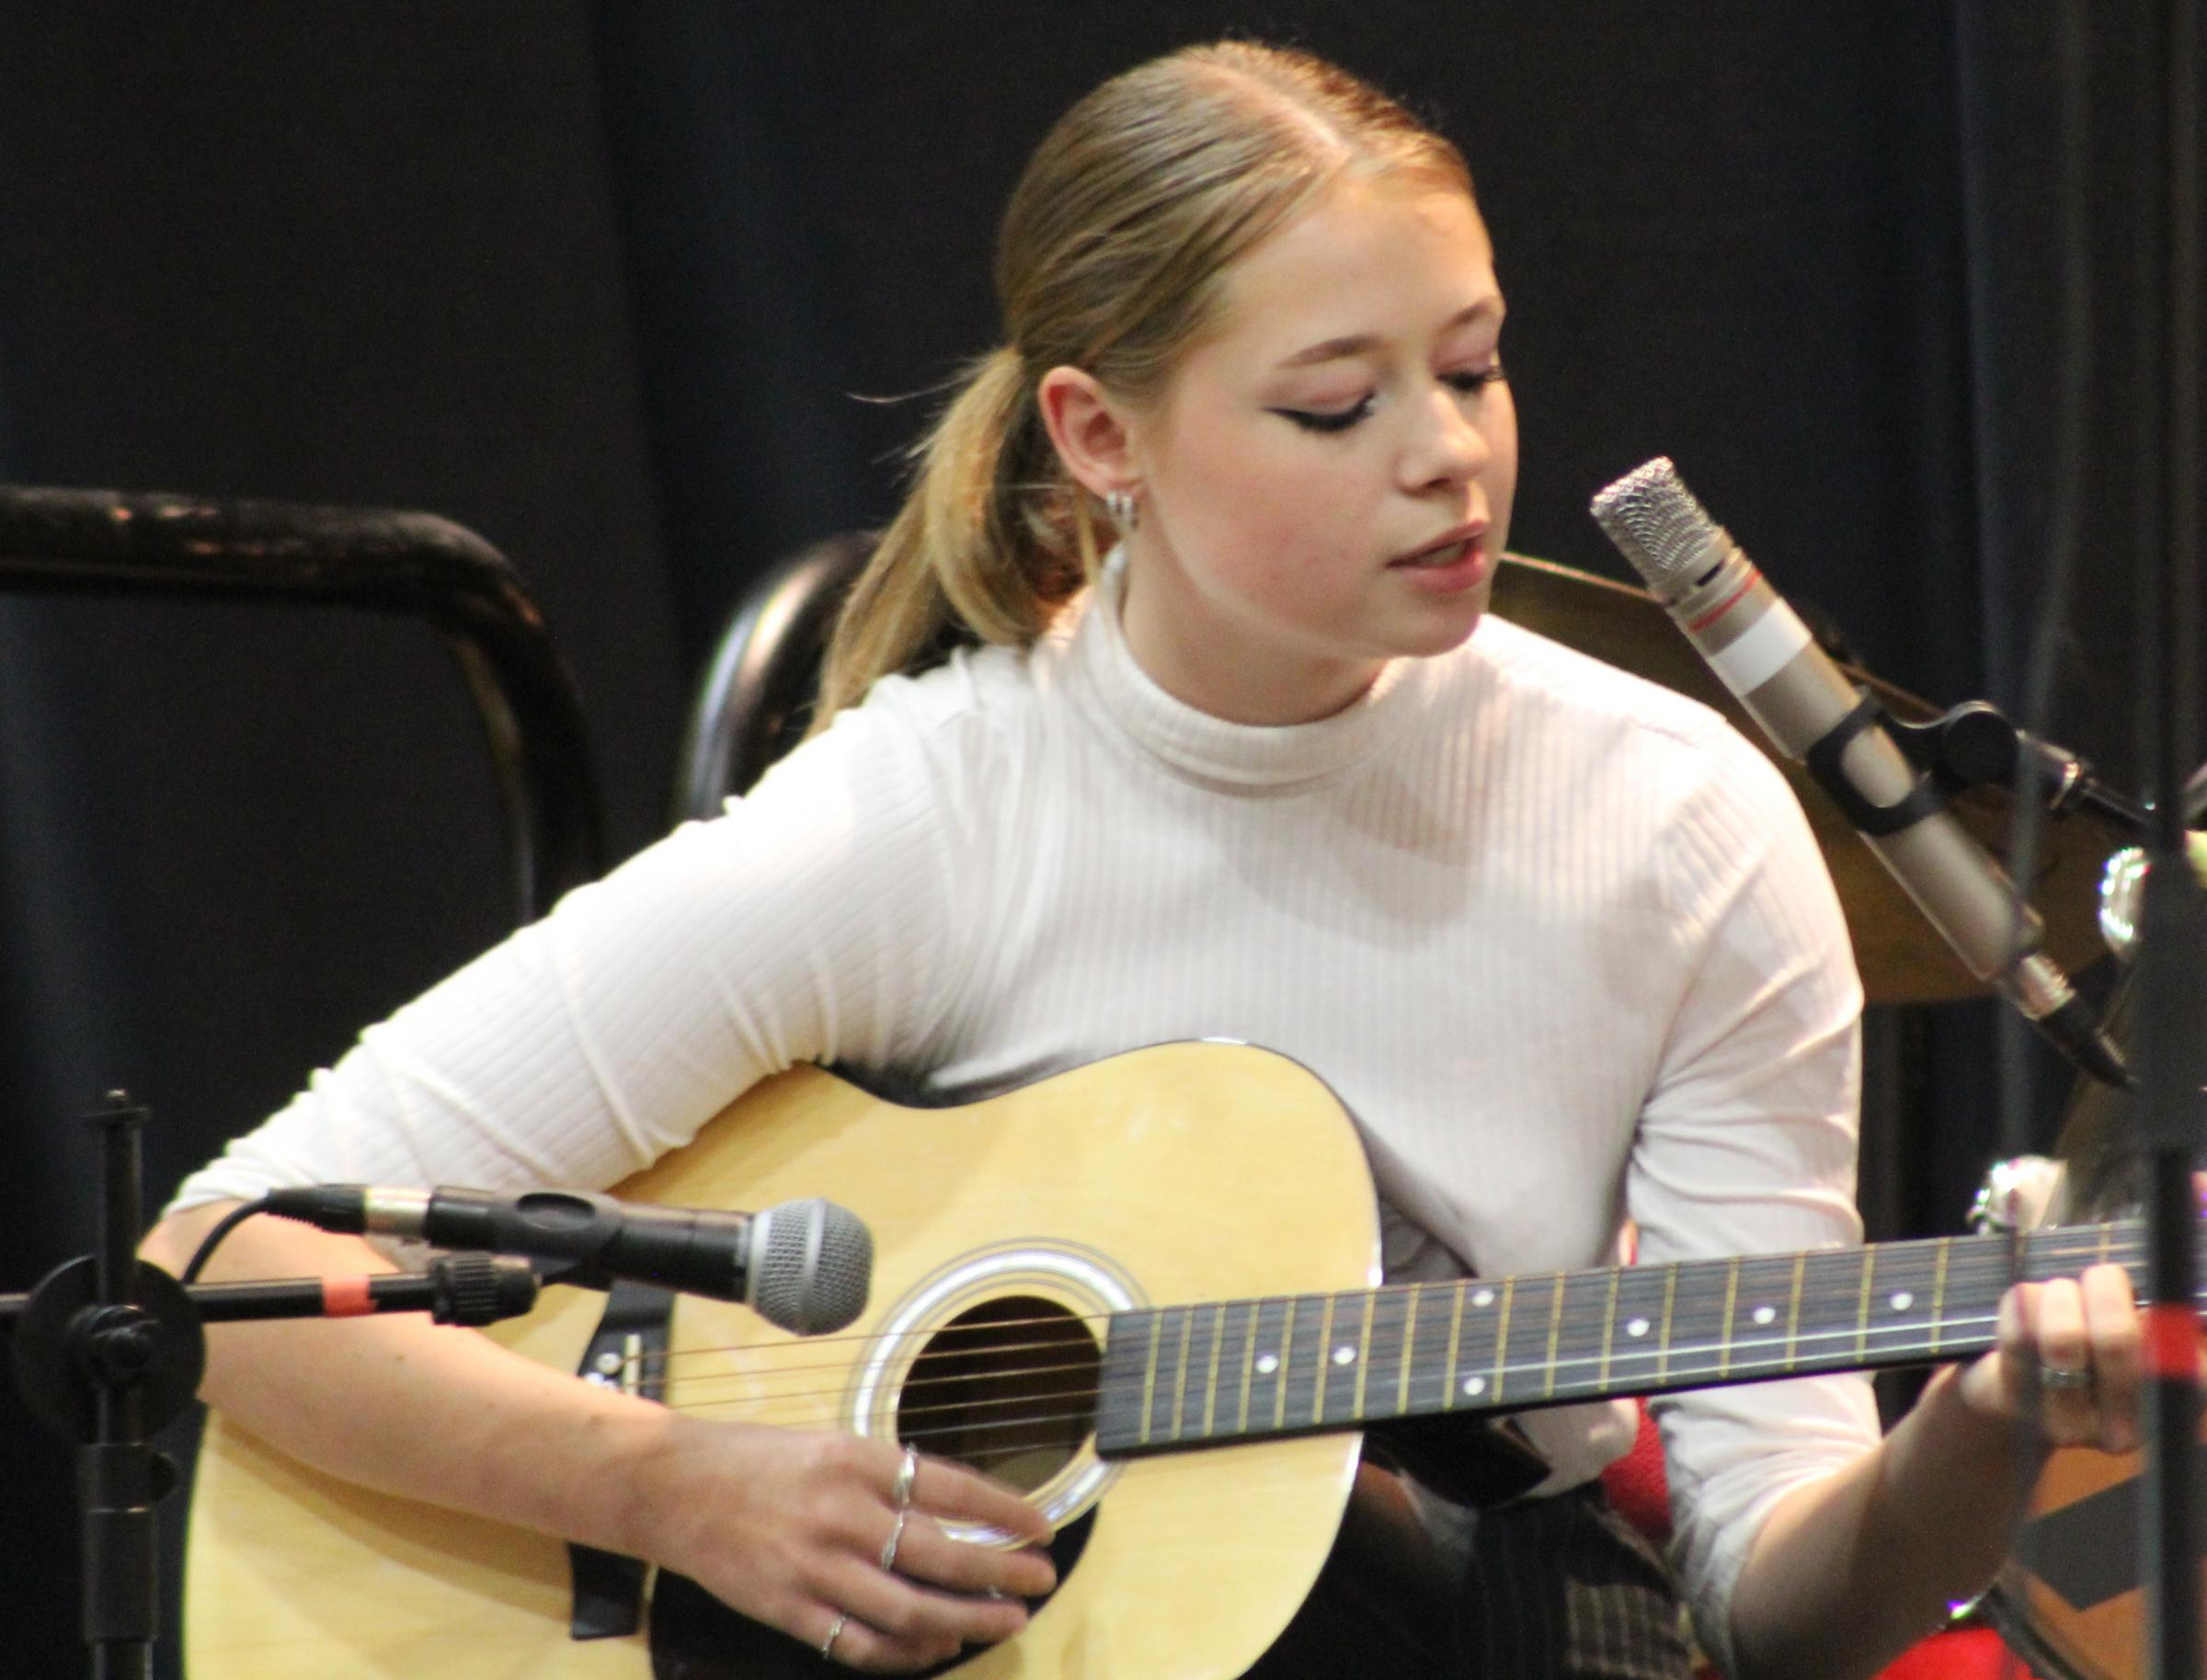 GUITAR: Katie Miller performing at the Prizegiving Event cropped